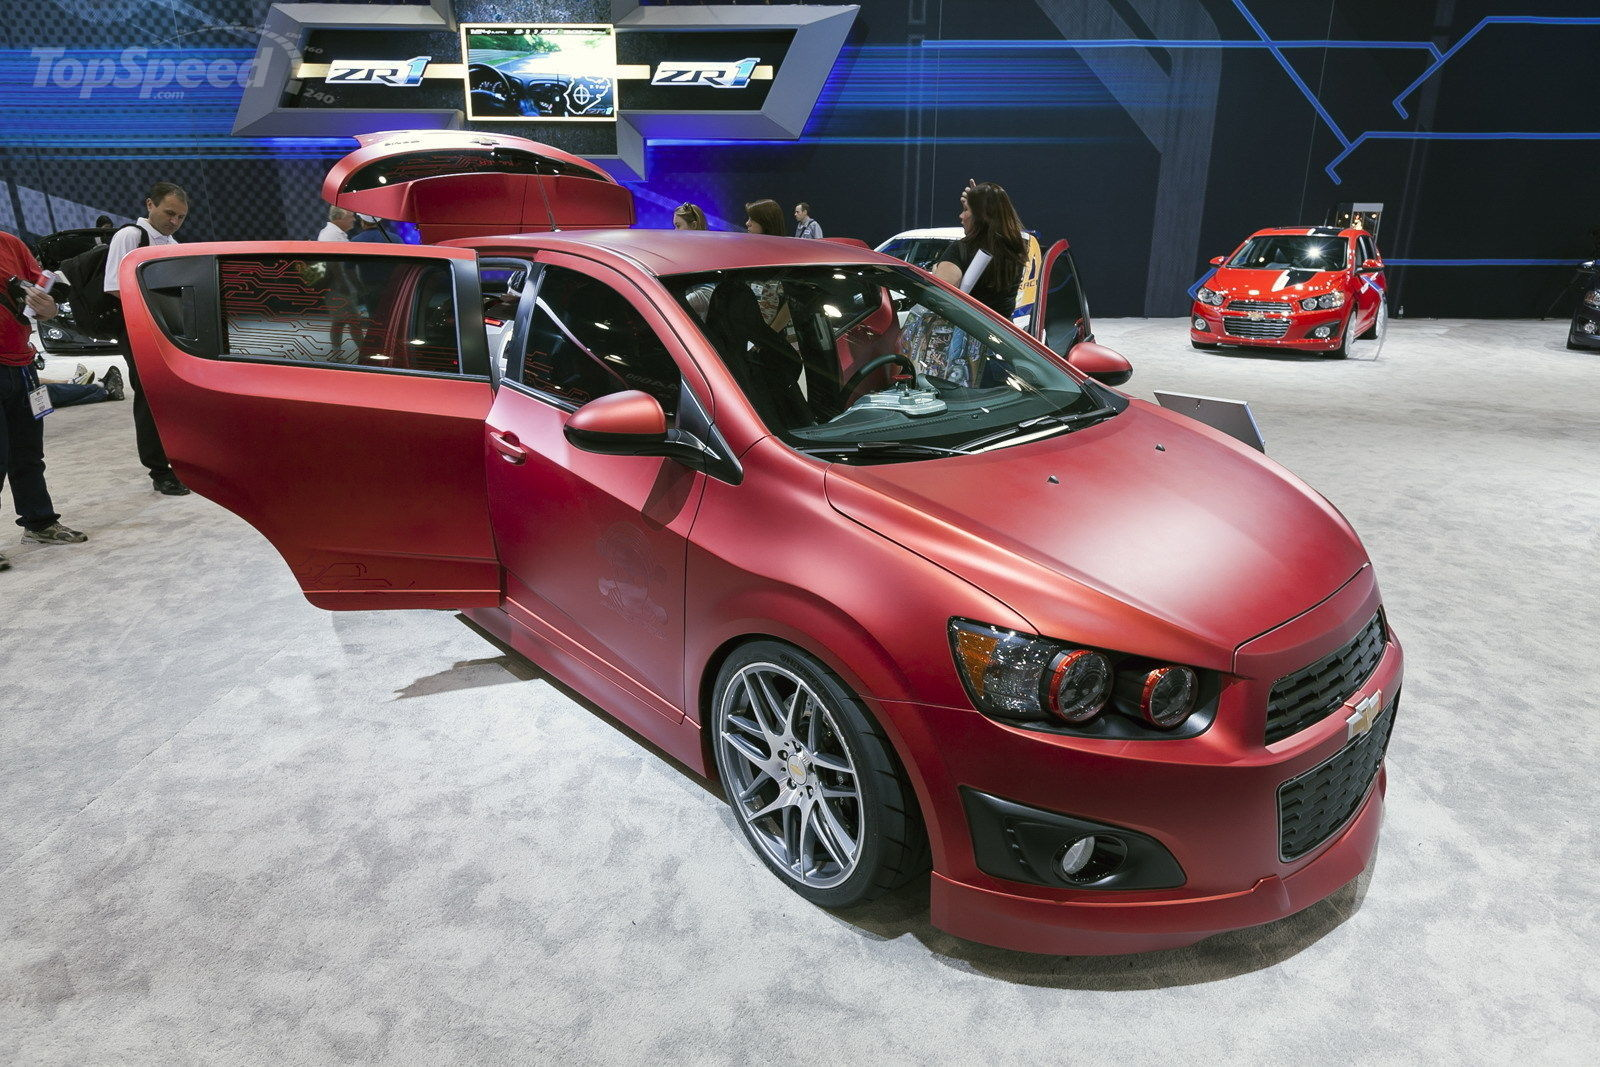 2012 Chevrolet Sonic Boom Concept | Top Speed